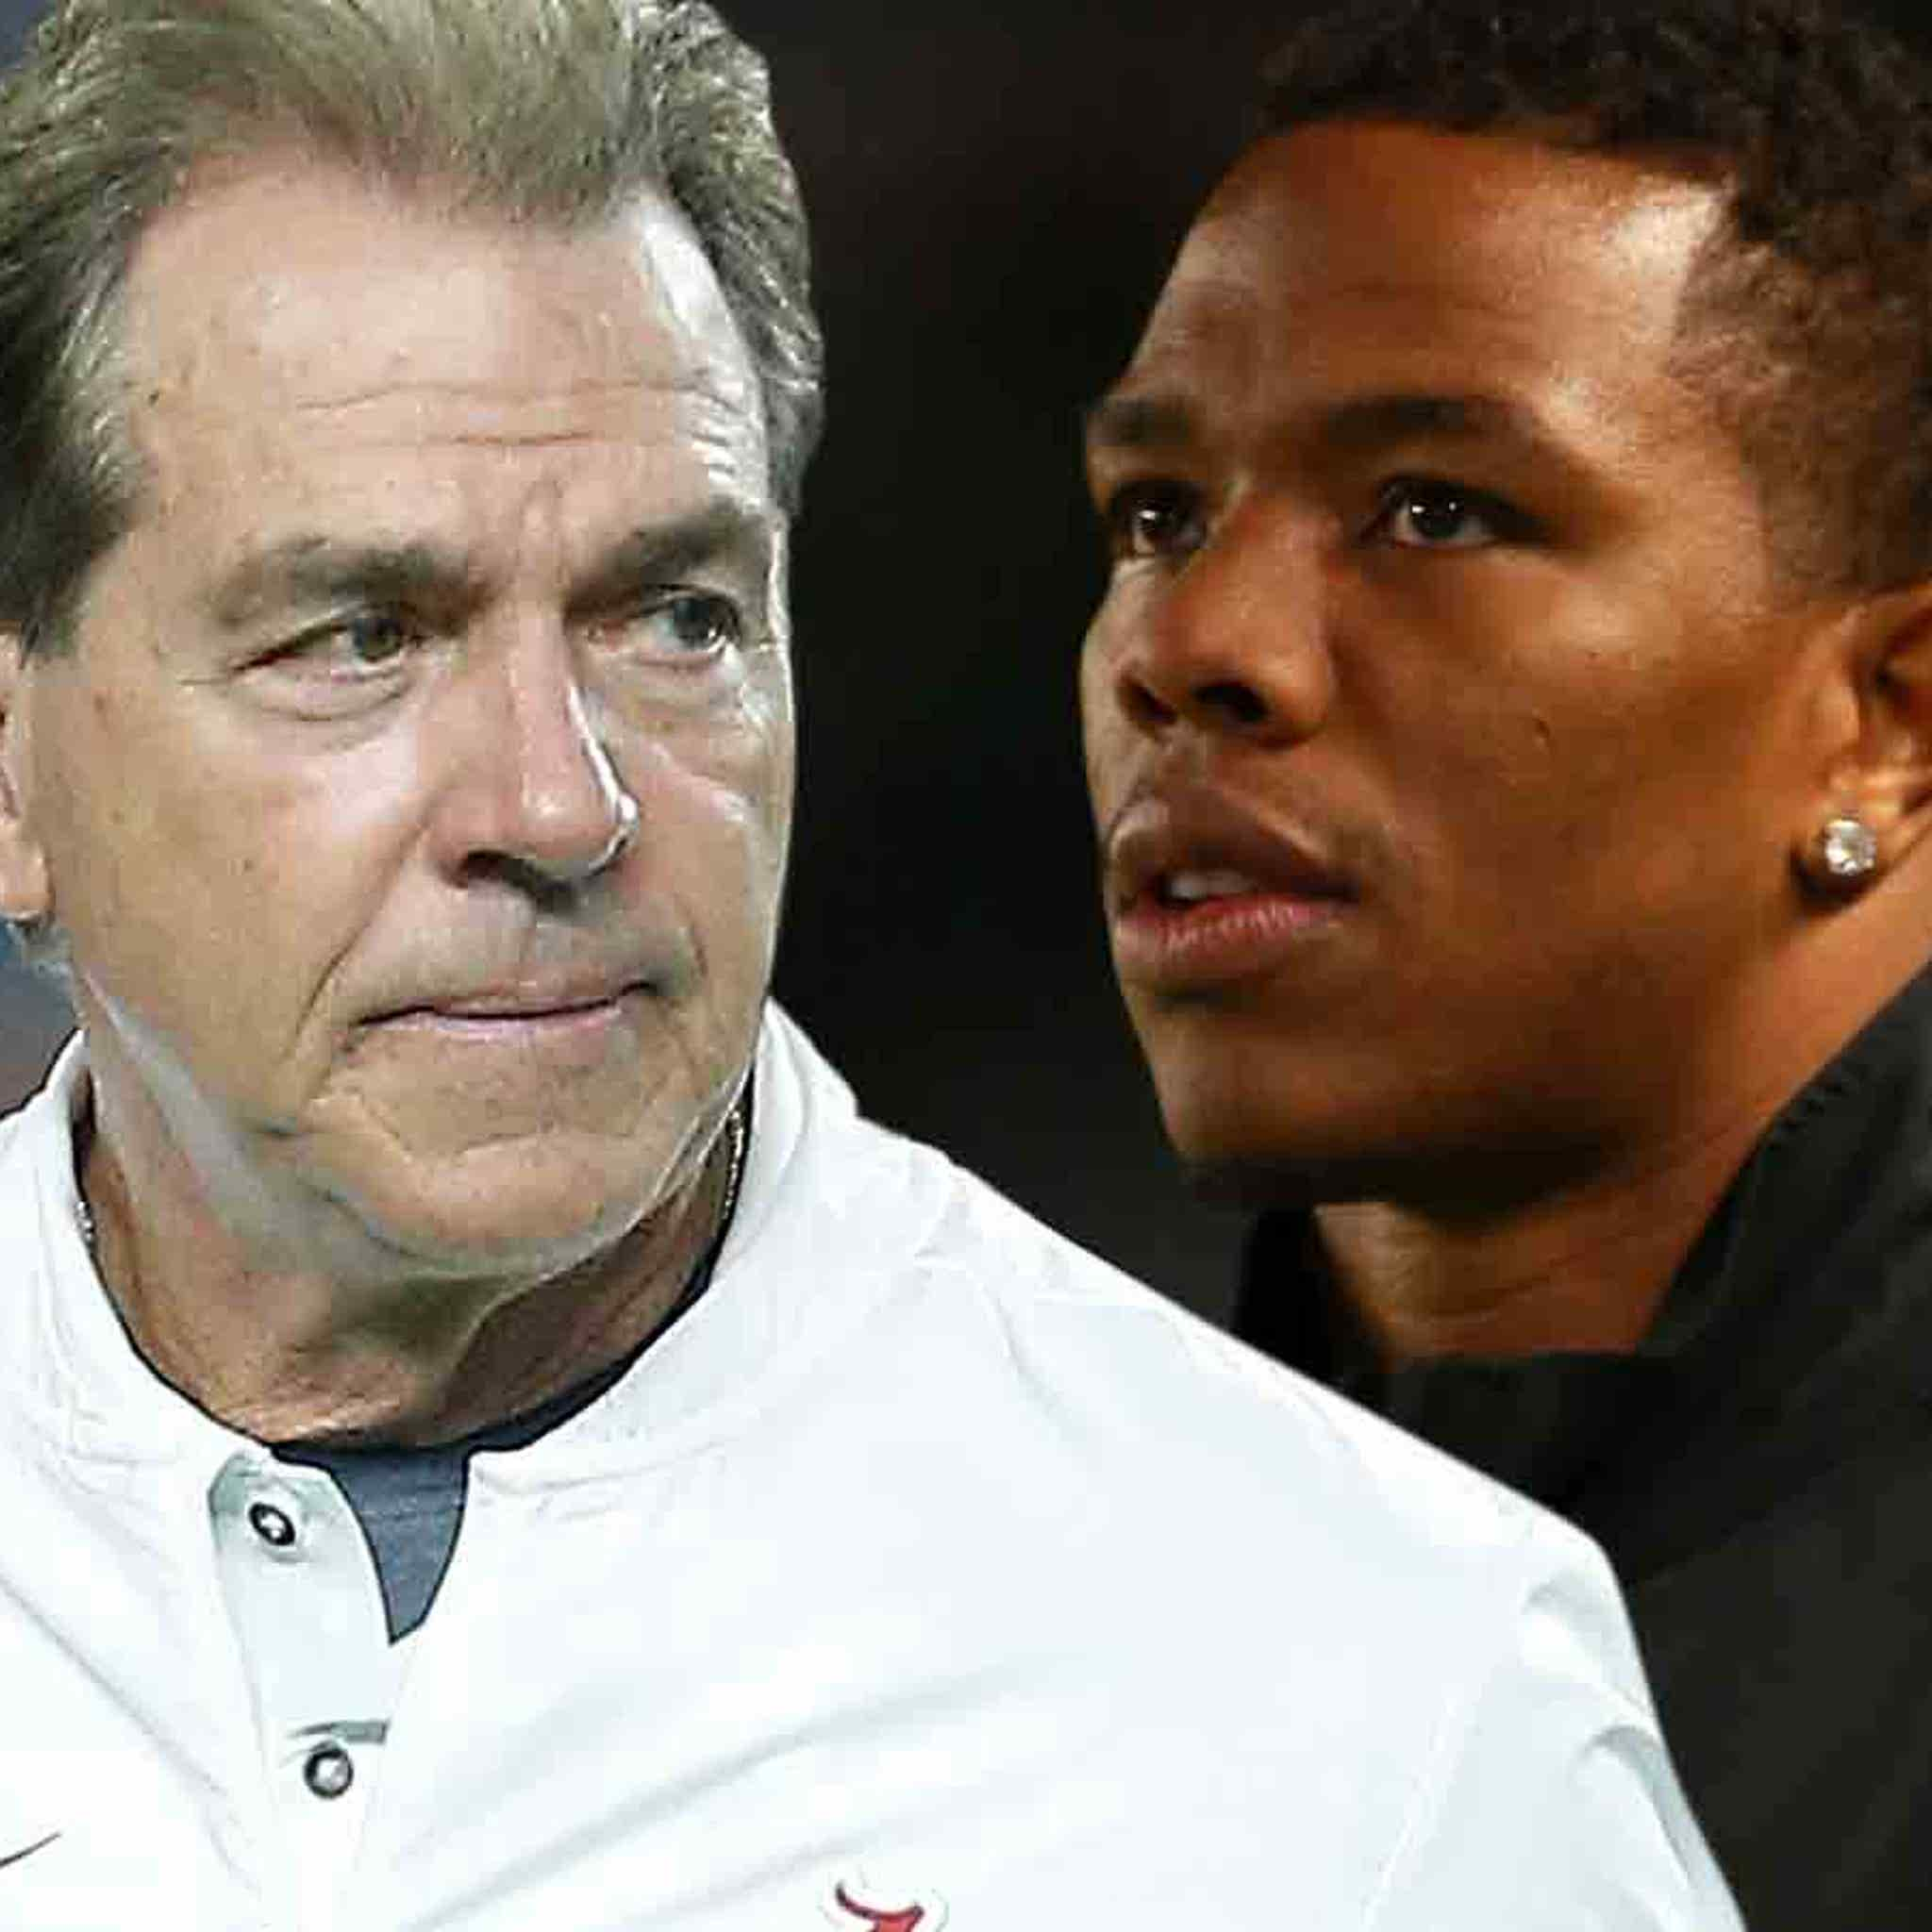 Nick Saban Has Ray Rice Speak To Alabama Players About 'How To Treat' Women